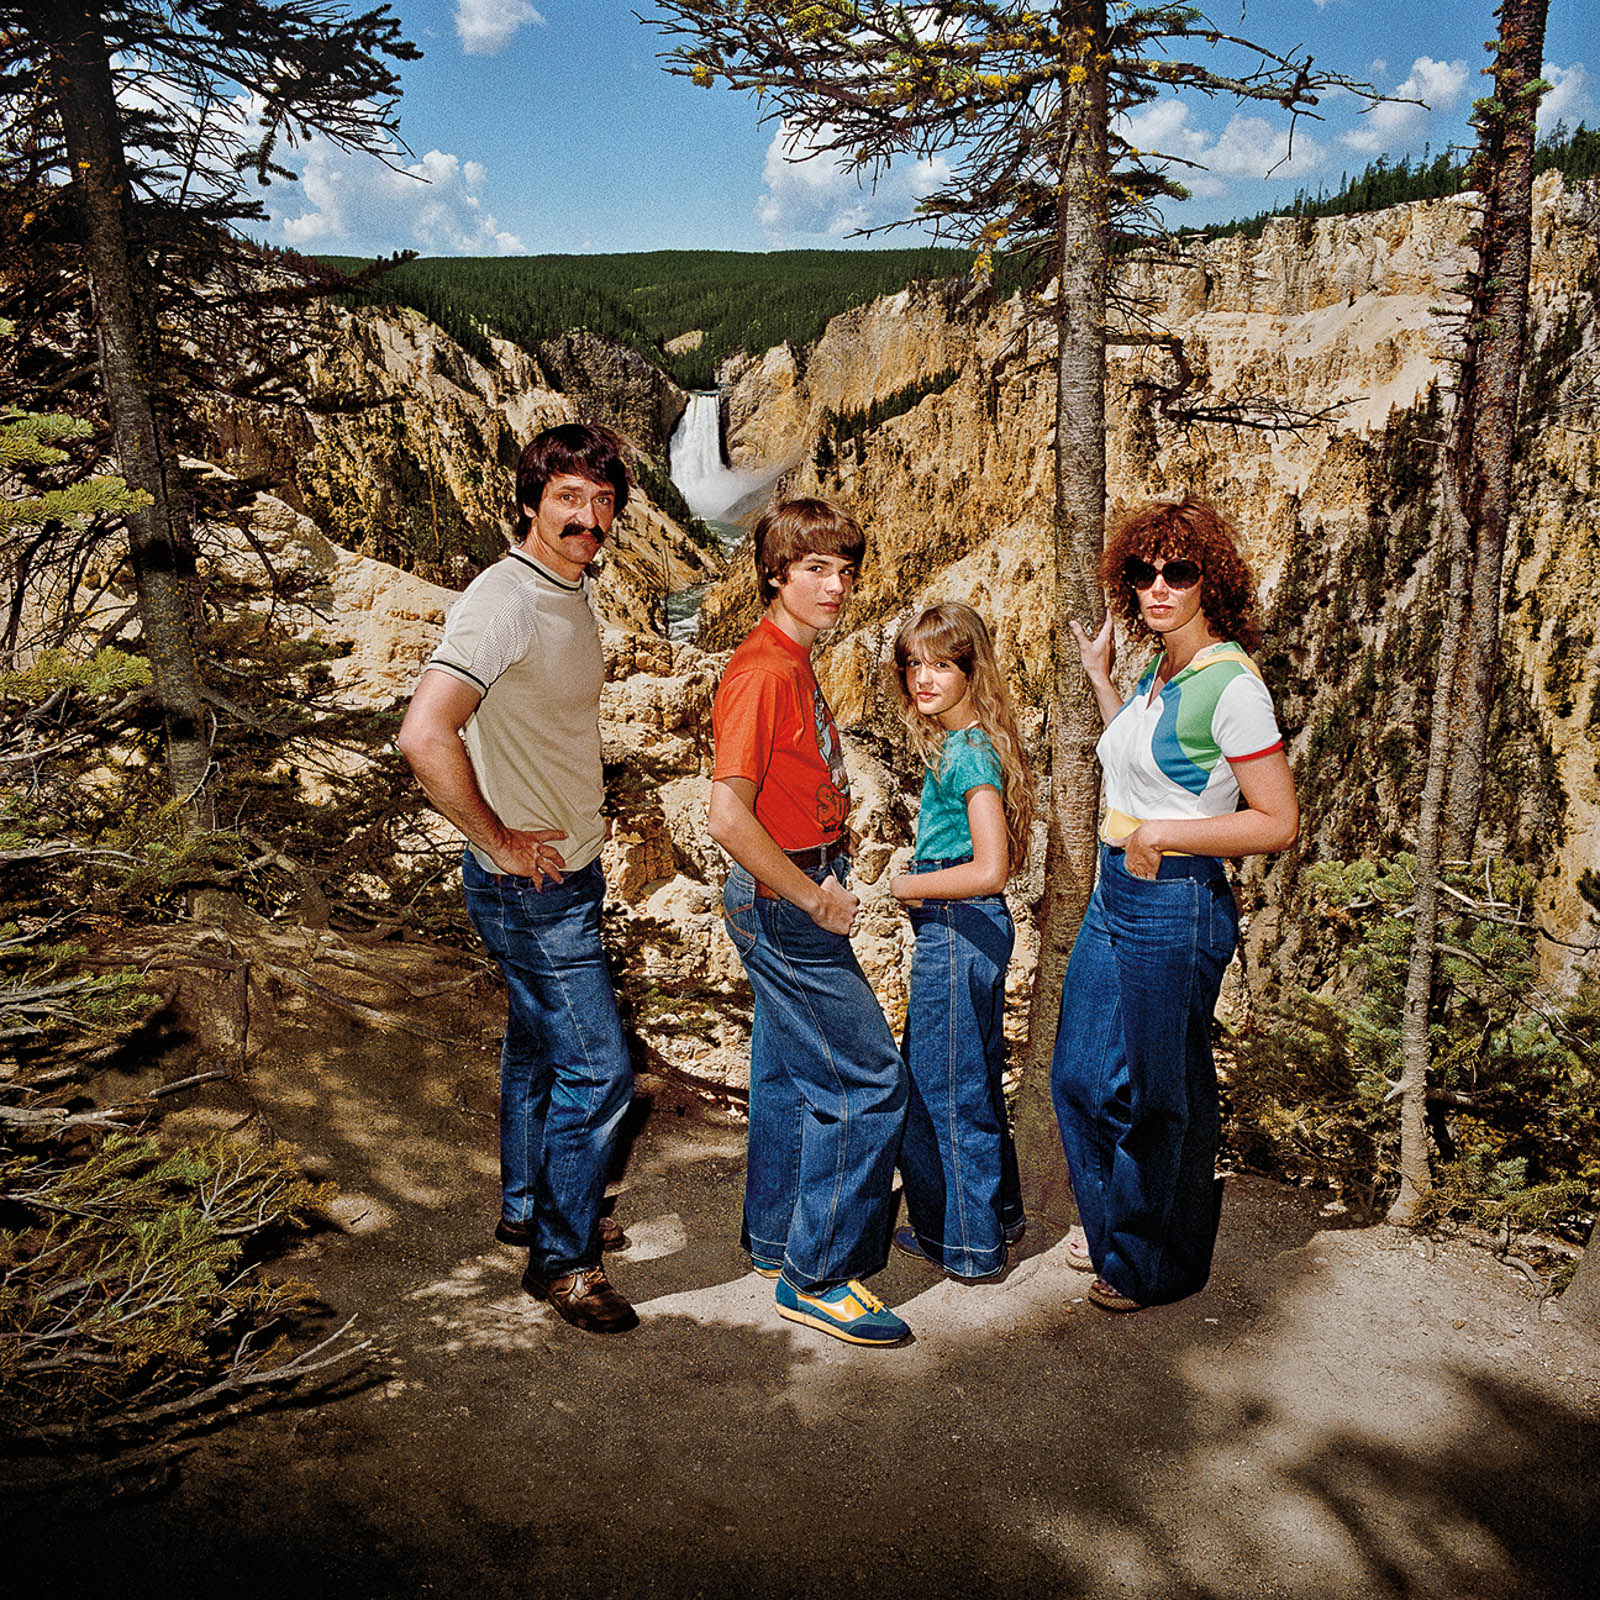 Family at Lower Falls, Yellowstone National Park, Wyoming 1980